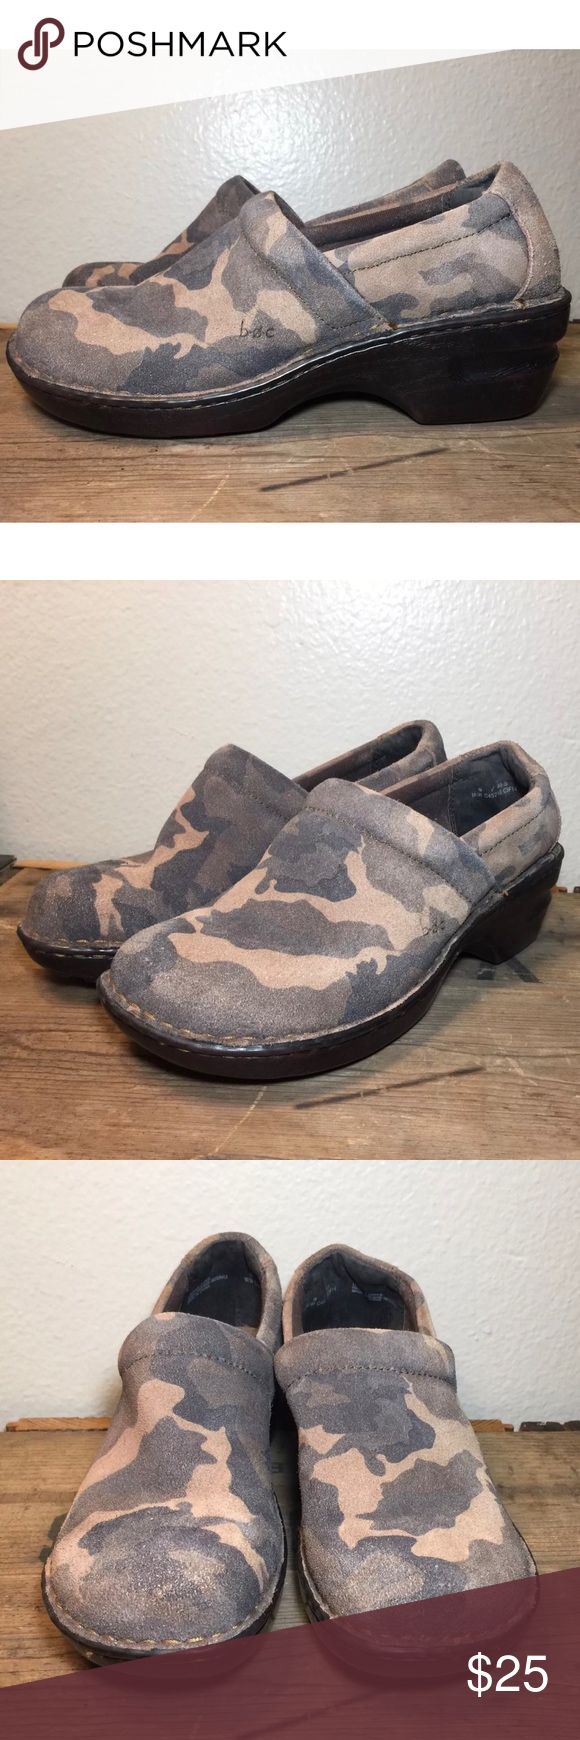 BØC Clogs Brown Camouflage SlipOn Mules Distressed BØC Born Womens Clogs Brown Camouflage Print Slip On Mules SZ 9M Camo Distressed  Brand- b.ø.c Size- 9 Color- Brown Condition- Have signs of wear, see pictures. Born Shoes Mules & Clogs